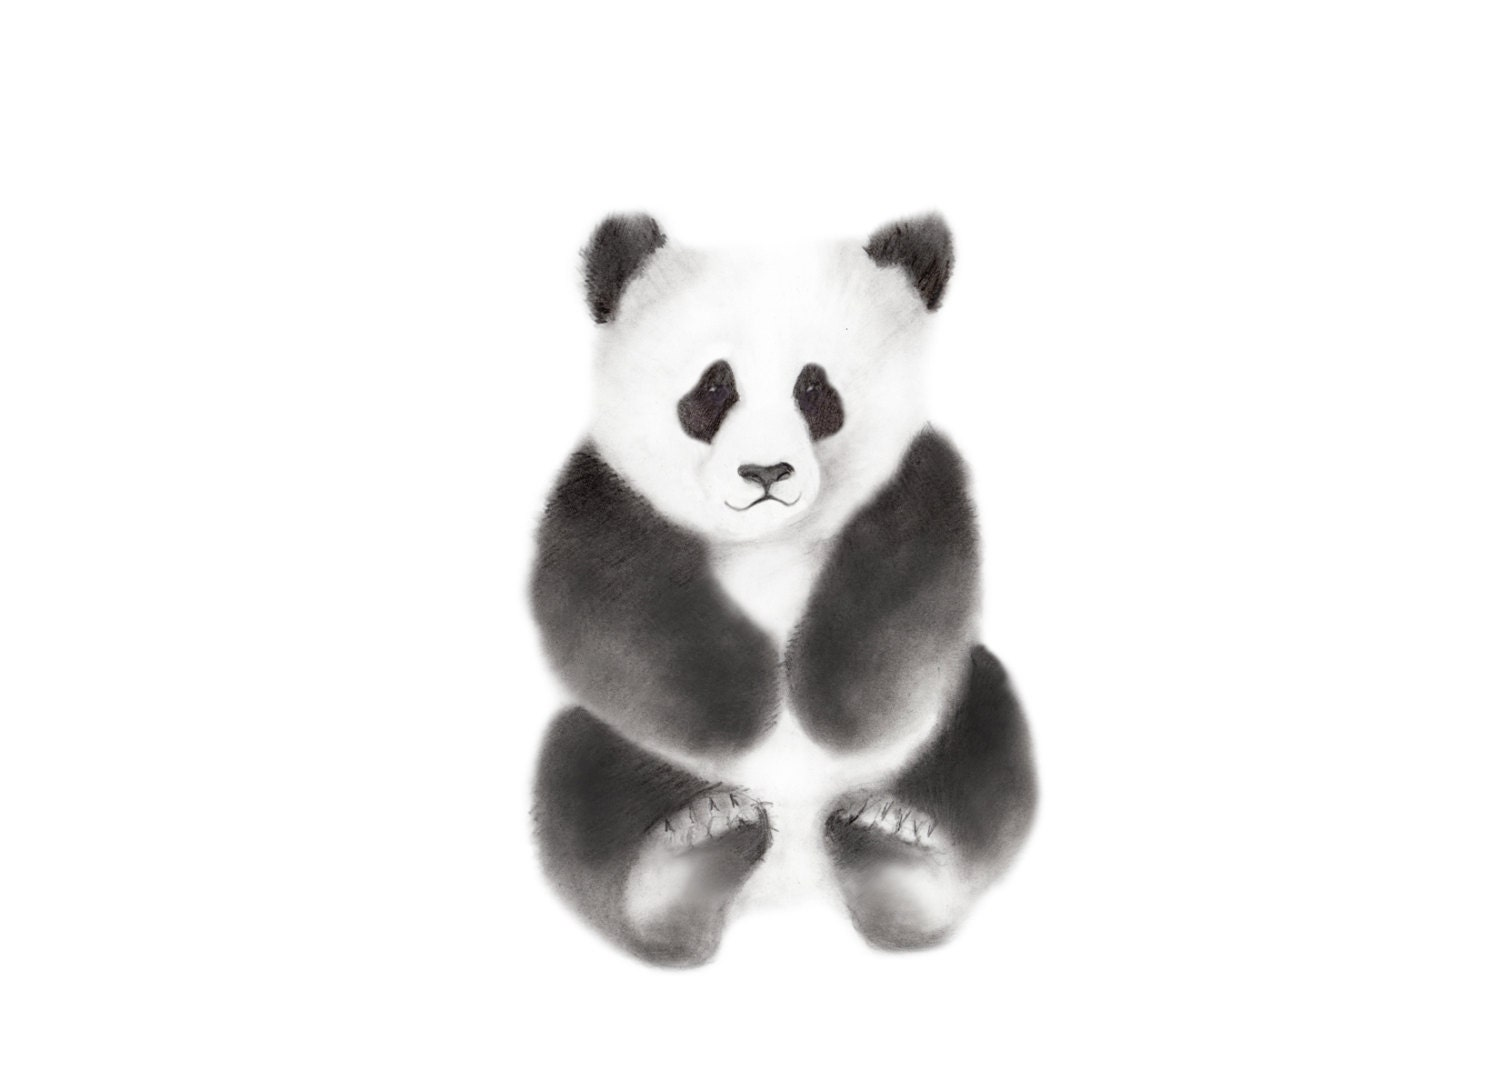 Cute Panda Drawings In Pencil